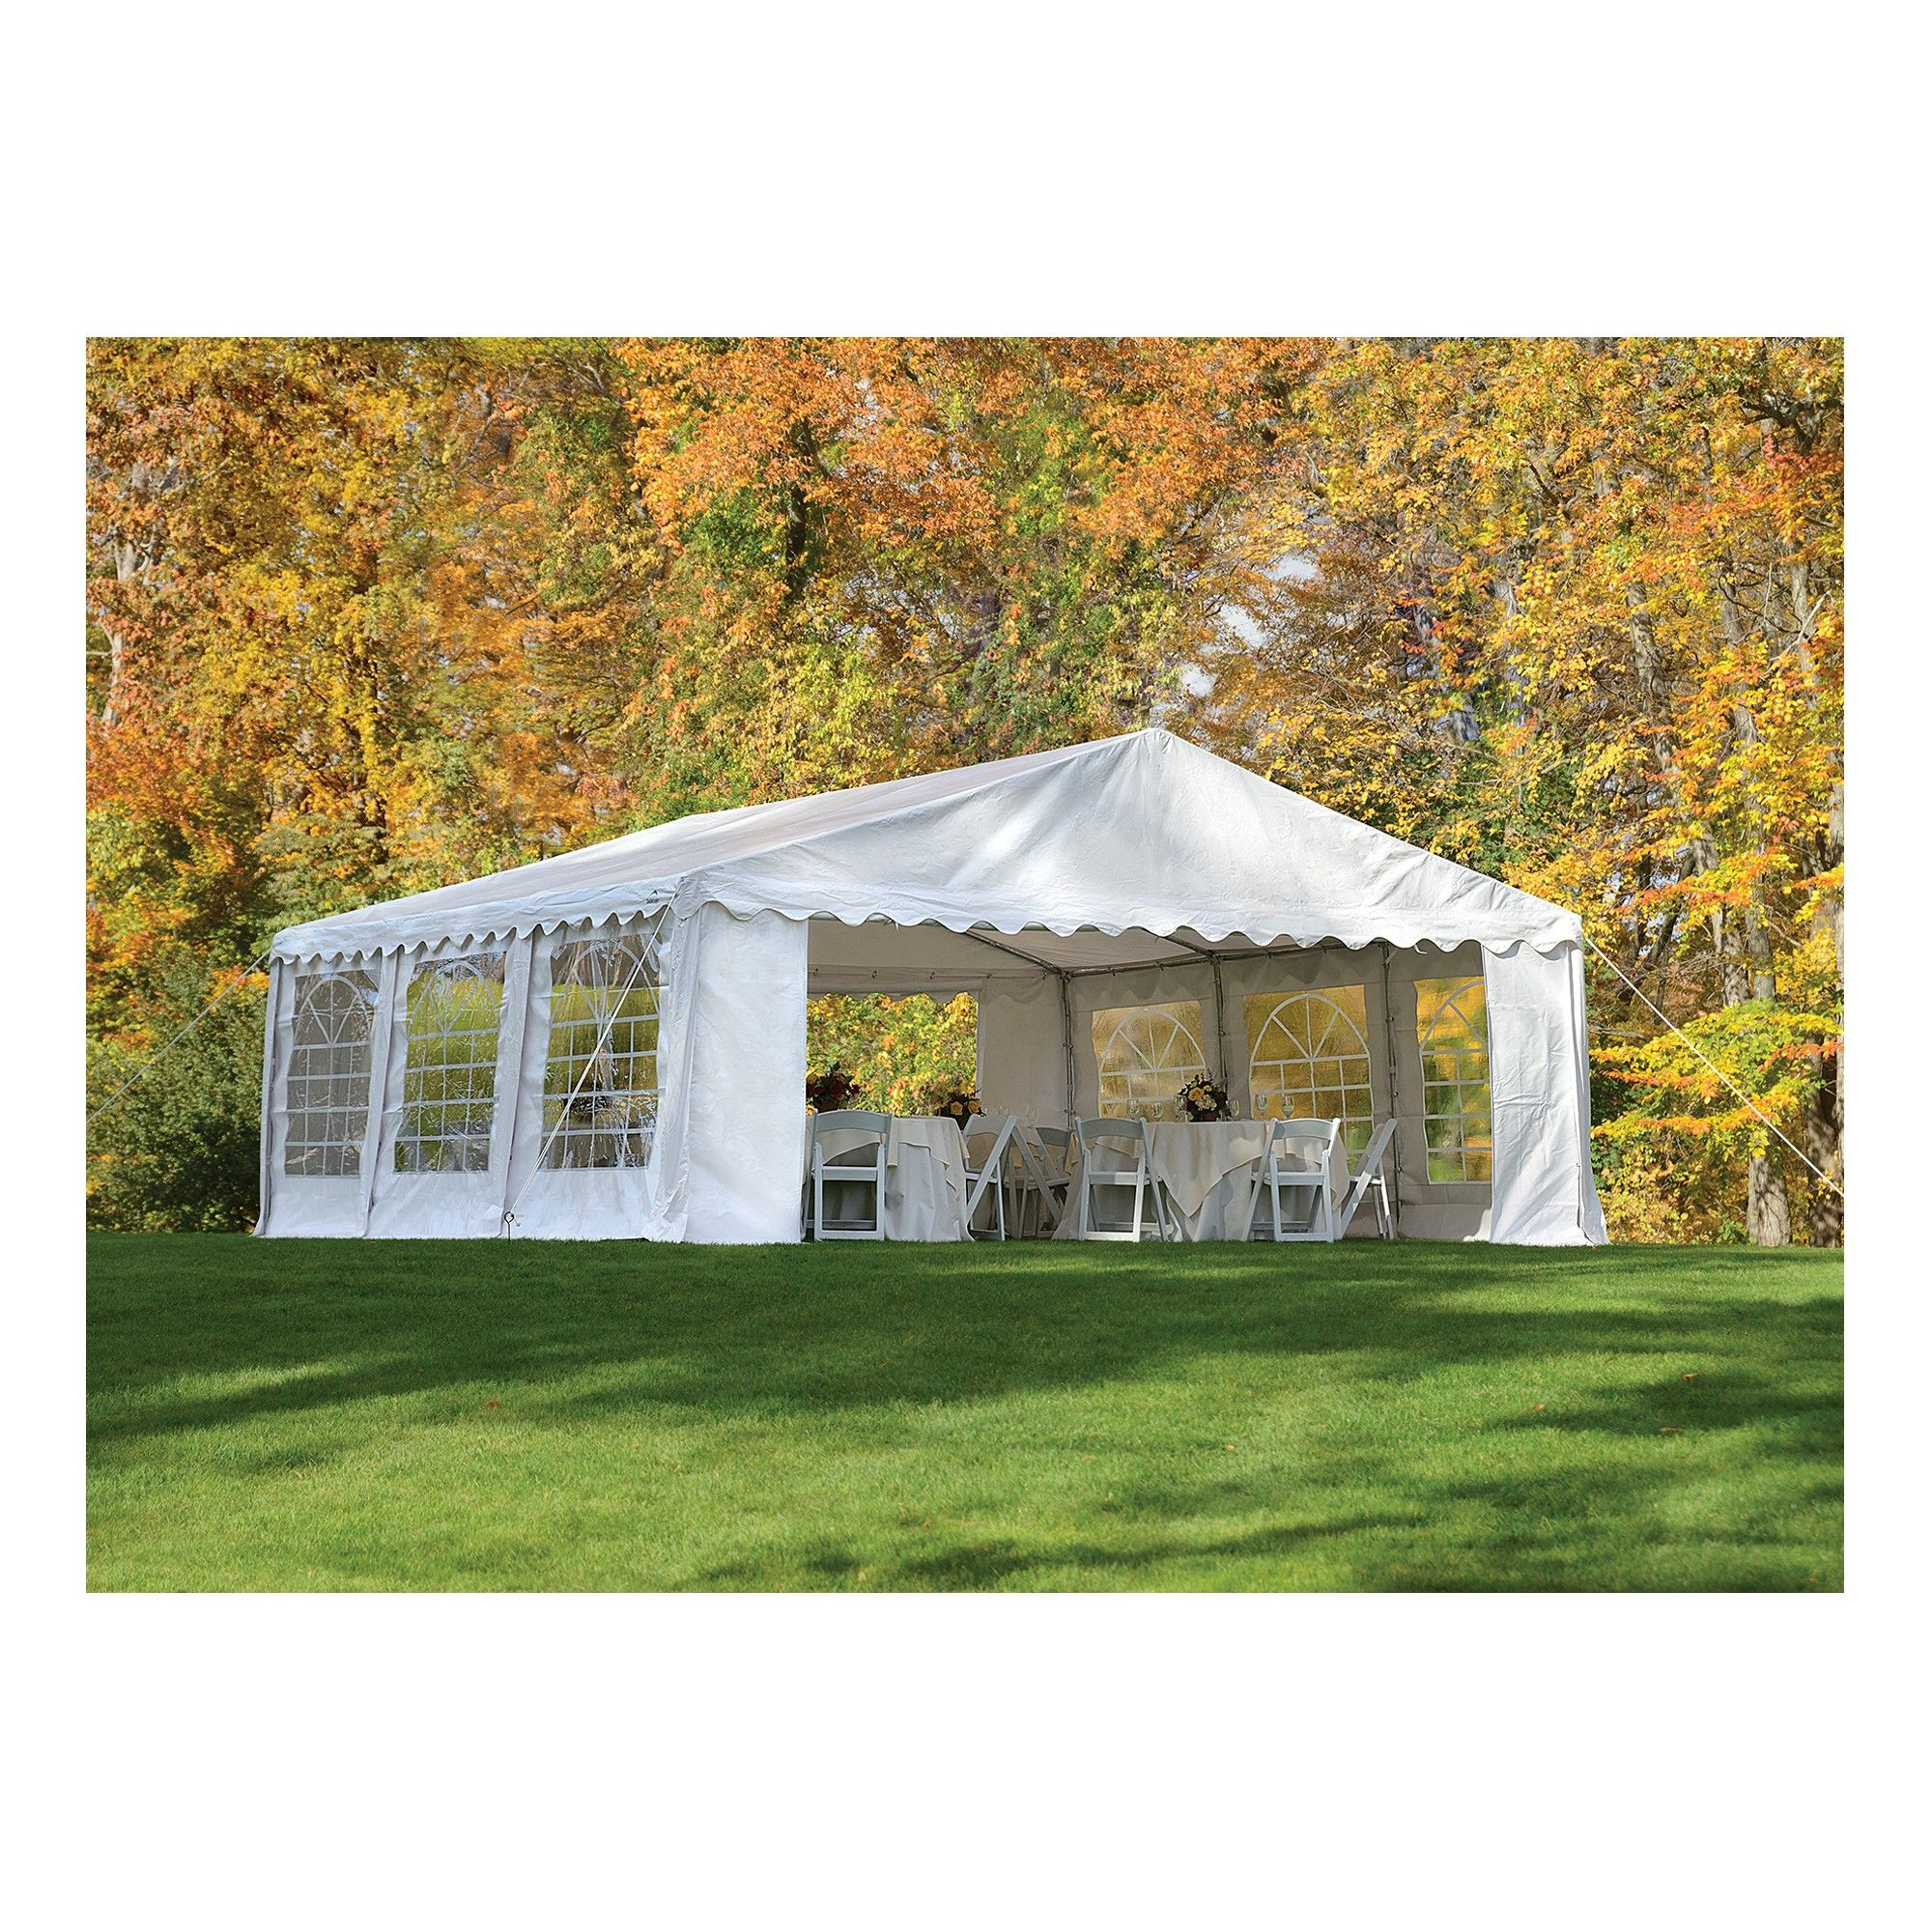 Shelter Logic 20x20 Party Tent and Enclosure Kit - White  sc 1 st  Pinterest & Shelter Logic 20x20 Party Tent and Enclosure Kit - White | Tents ...